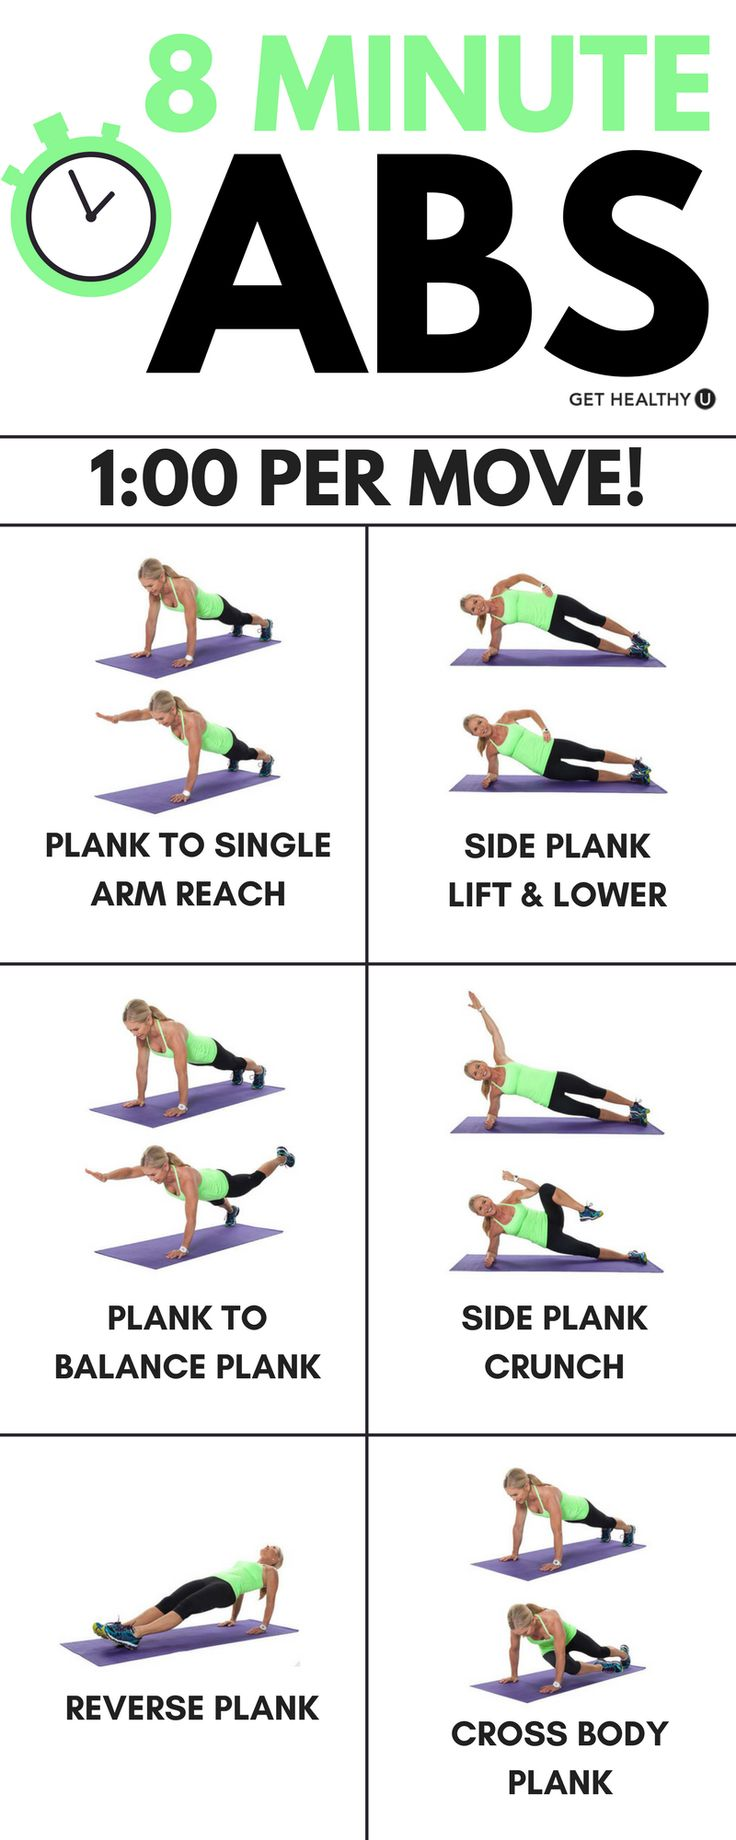 Check out this 8 minute plank challenge! This will help strengthen your core while sculpting beautiful abs! If you're looking for a great challenging ab workout, this is perfect for you!